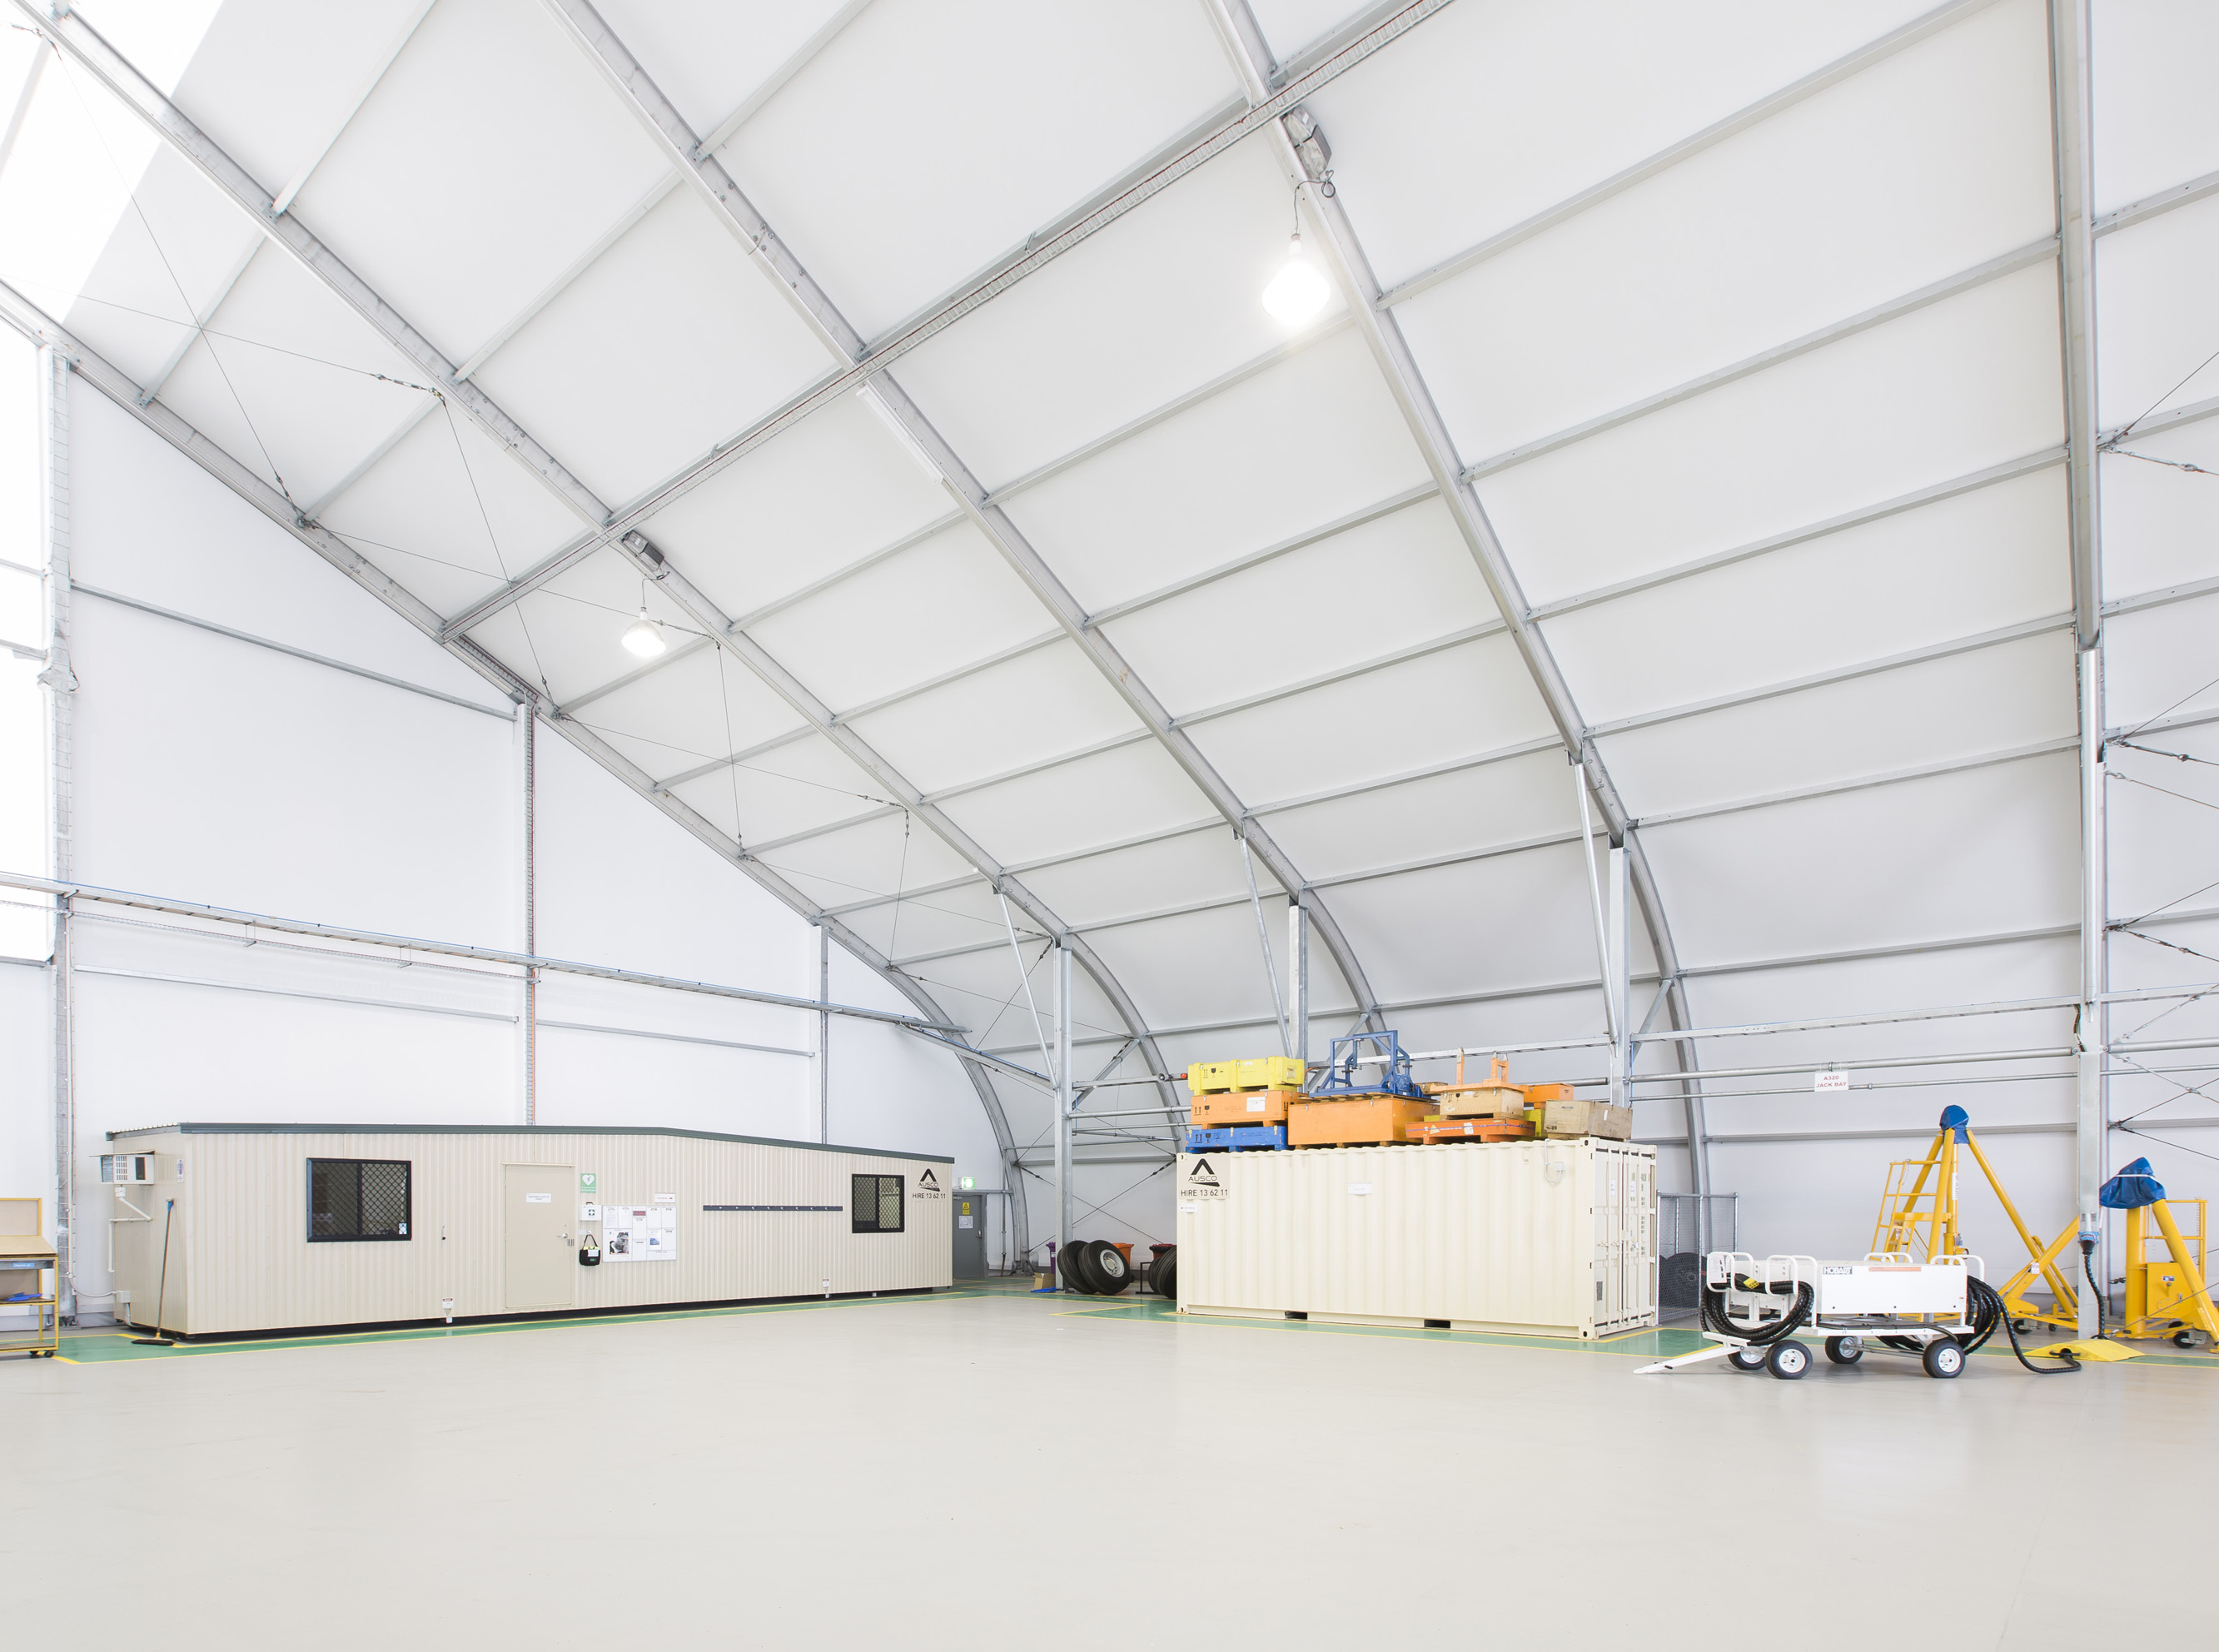 8189-virgin-hangar-pvc-2013-fs-4